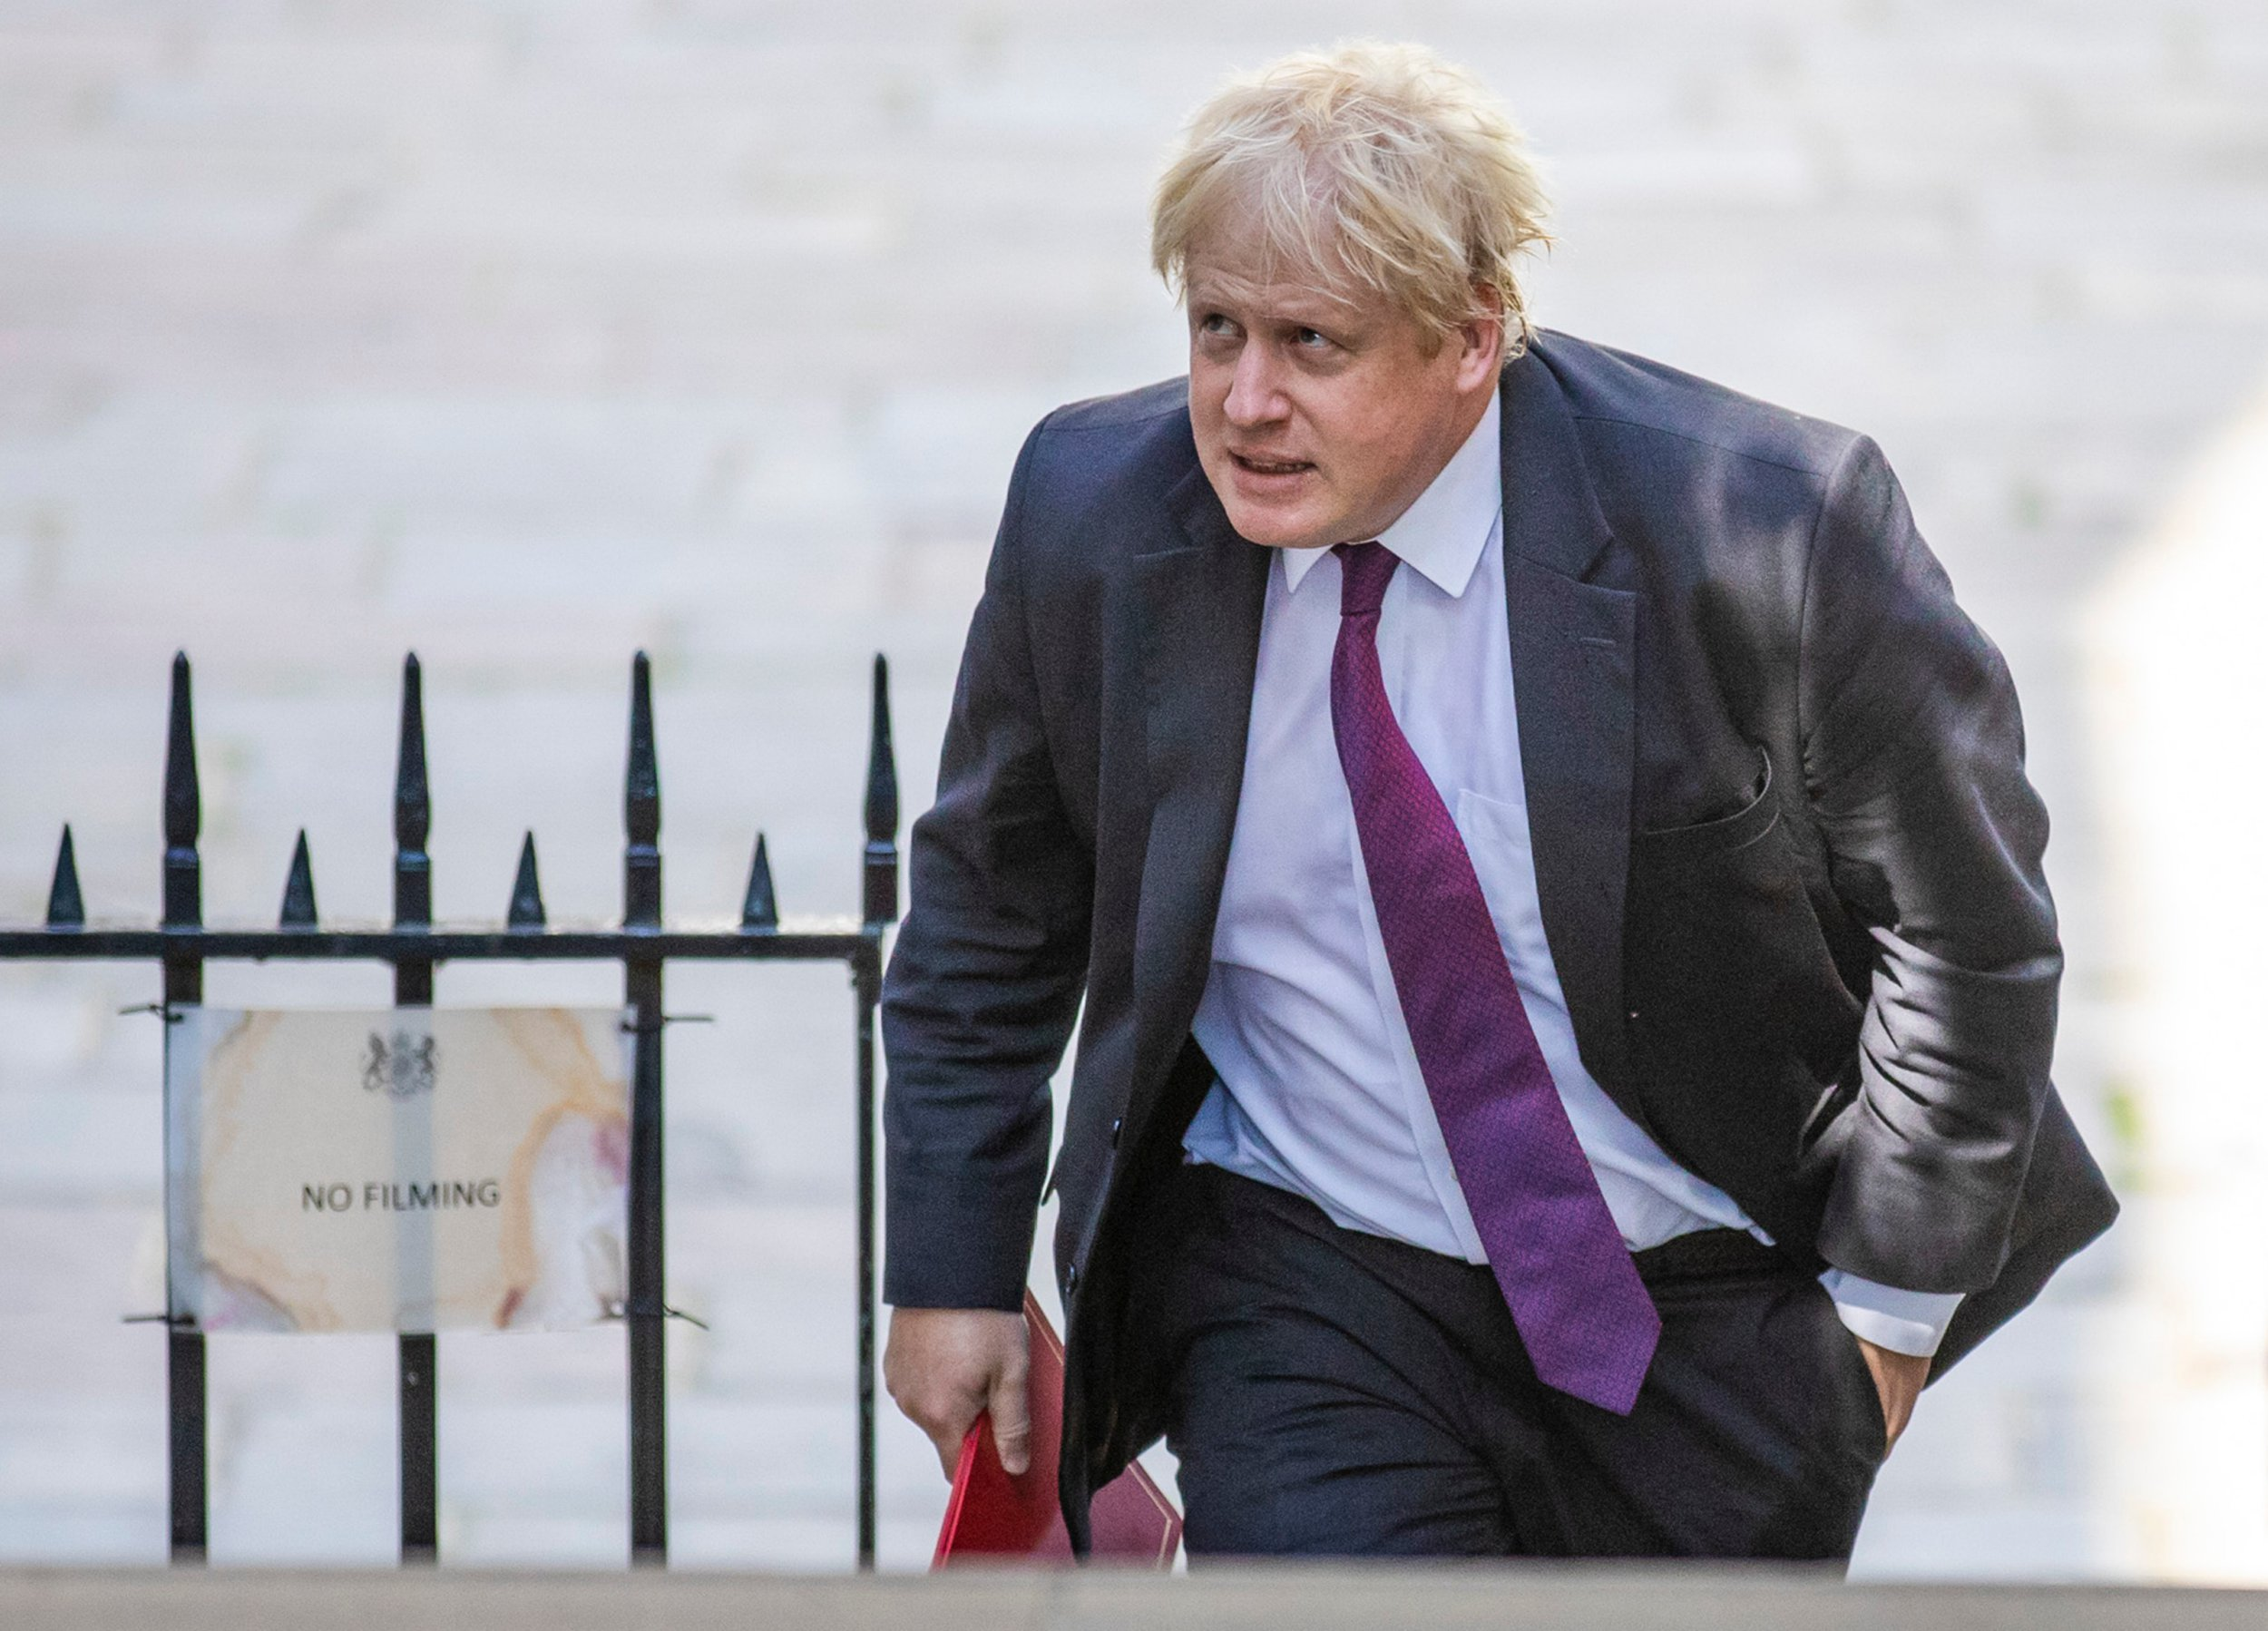 Boris the Brexiteer continues his own Project Fear against Theresa May